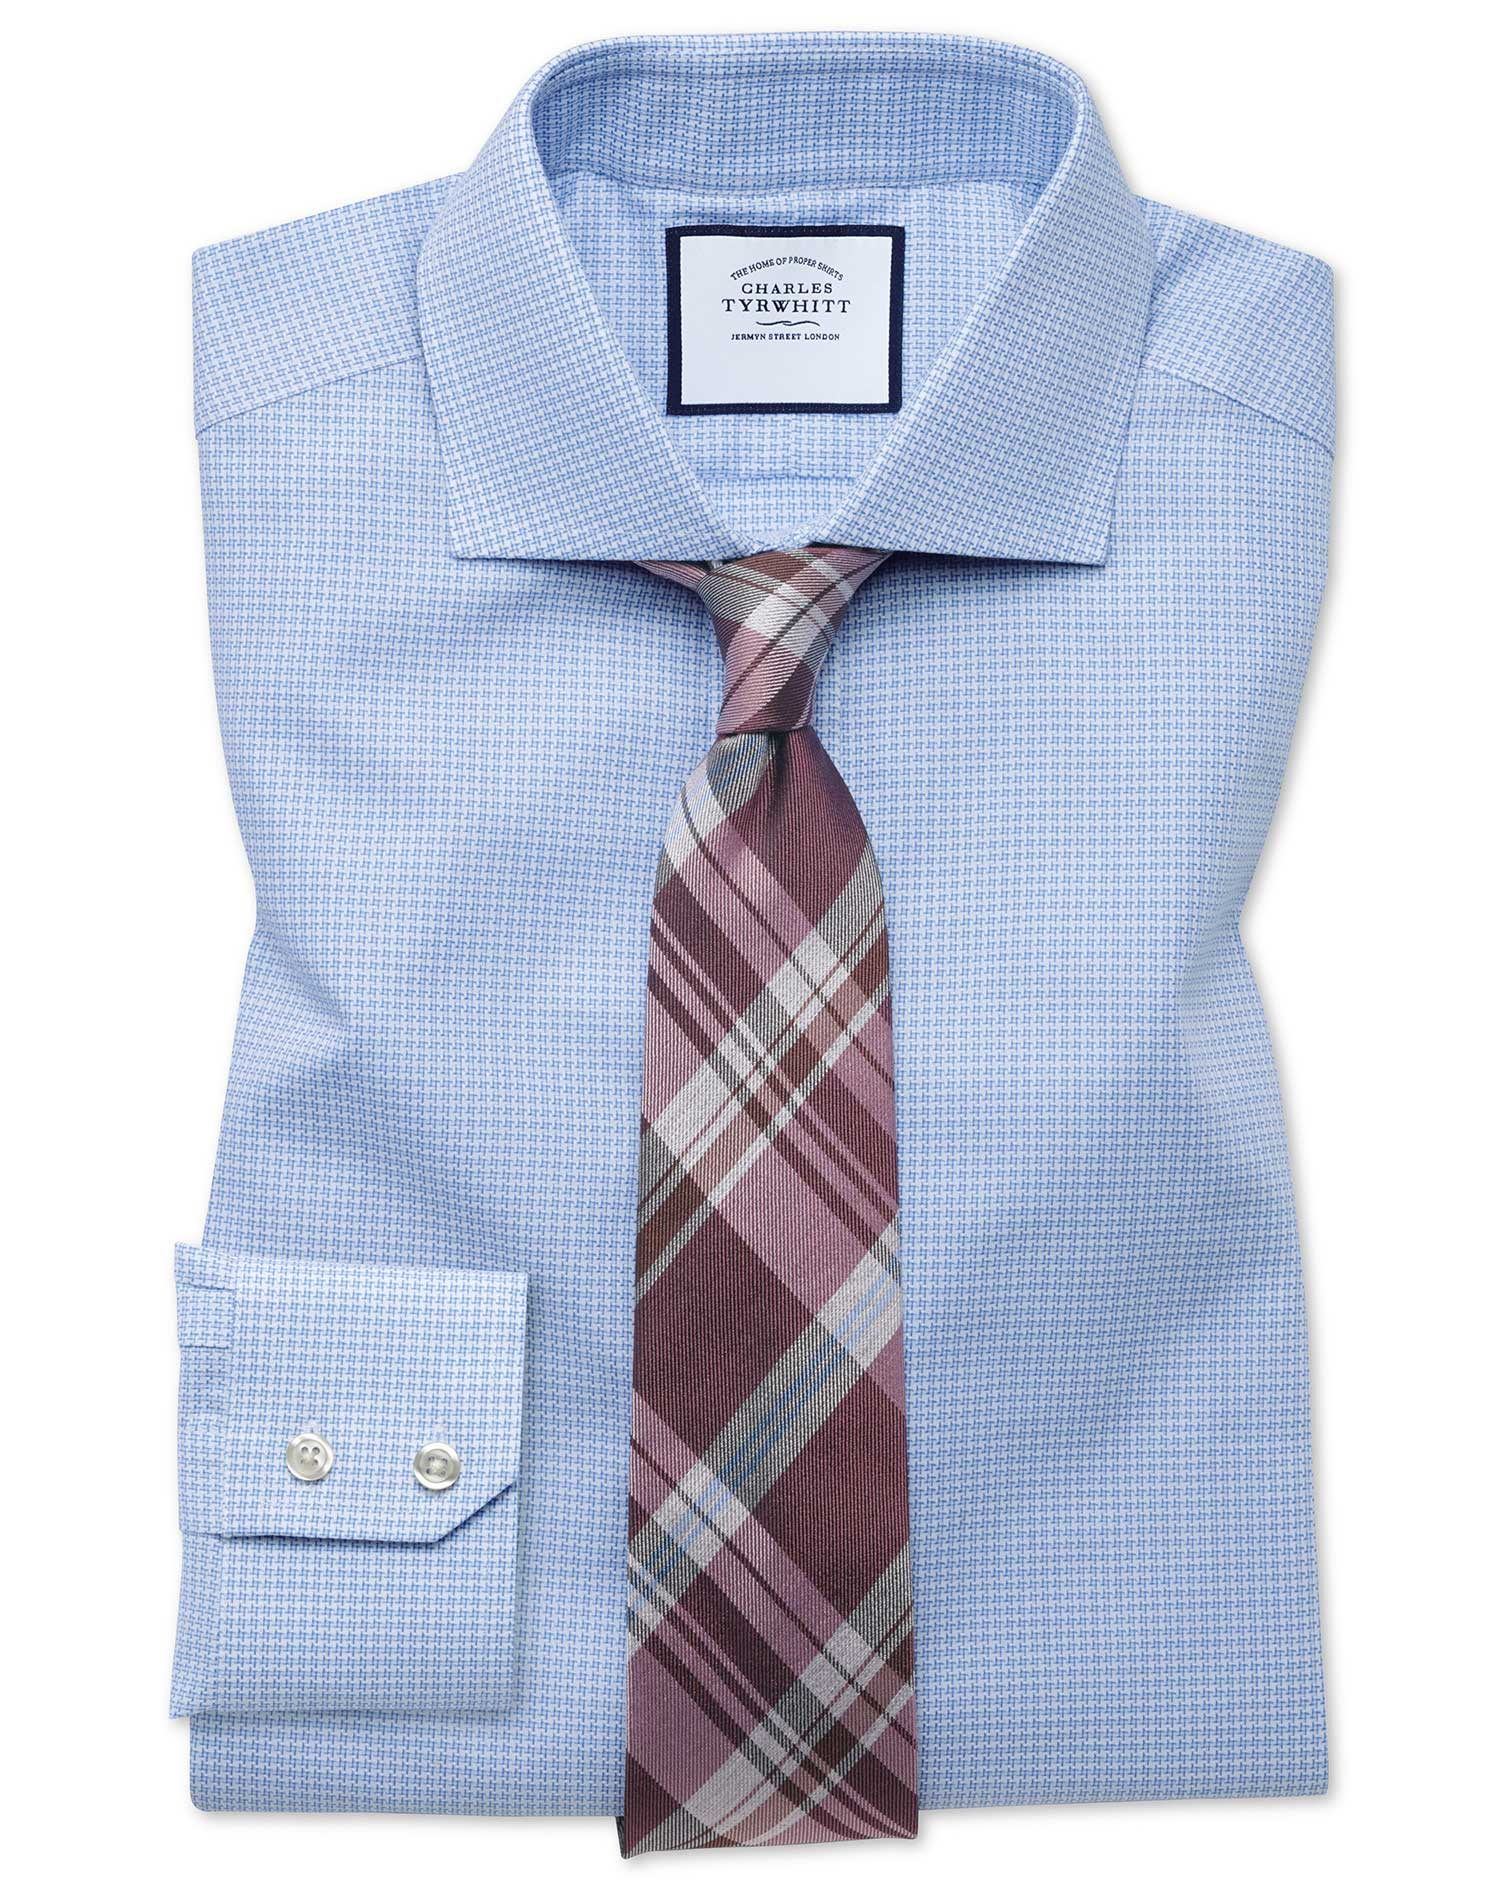 Slim Fit Cutaway Textured Puppytooth Sky Blue Cotton Formal Shirt Single Cuff Size 17/34 by Charles